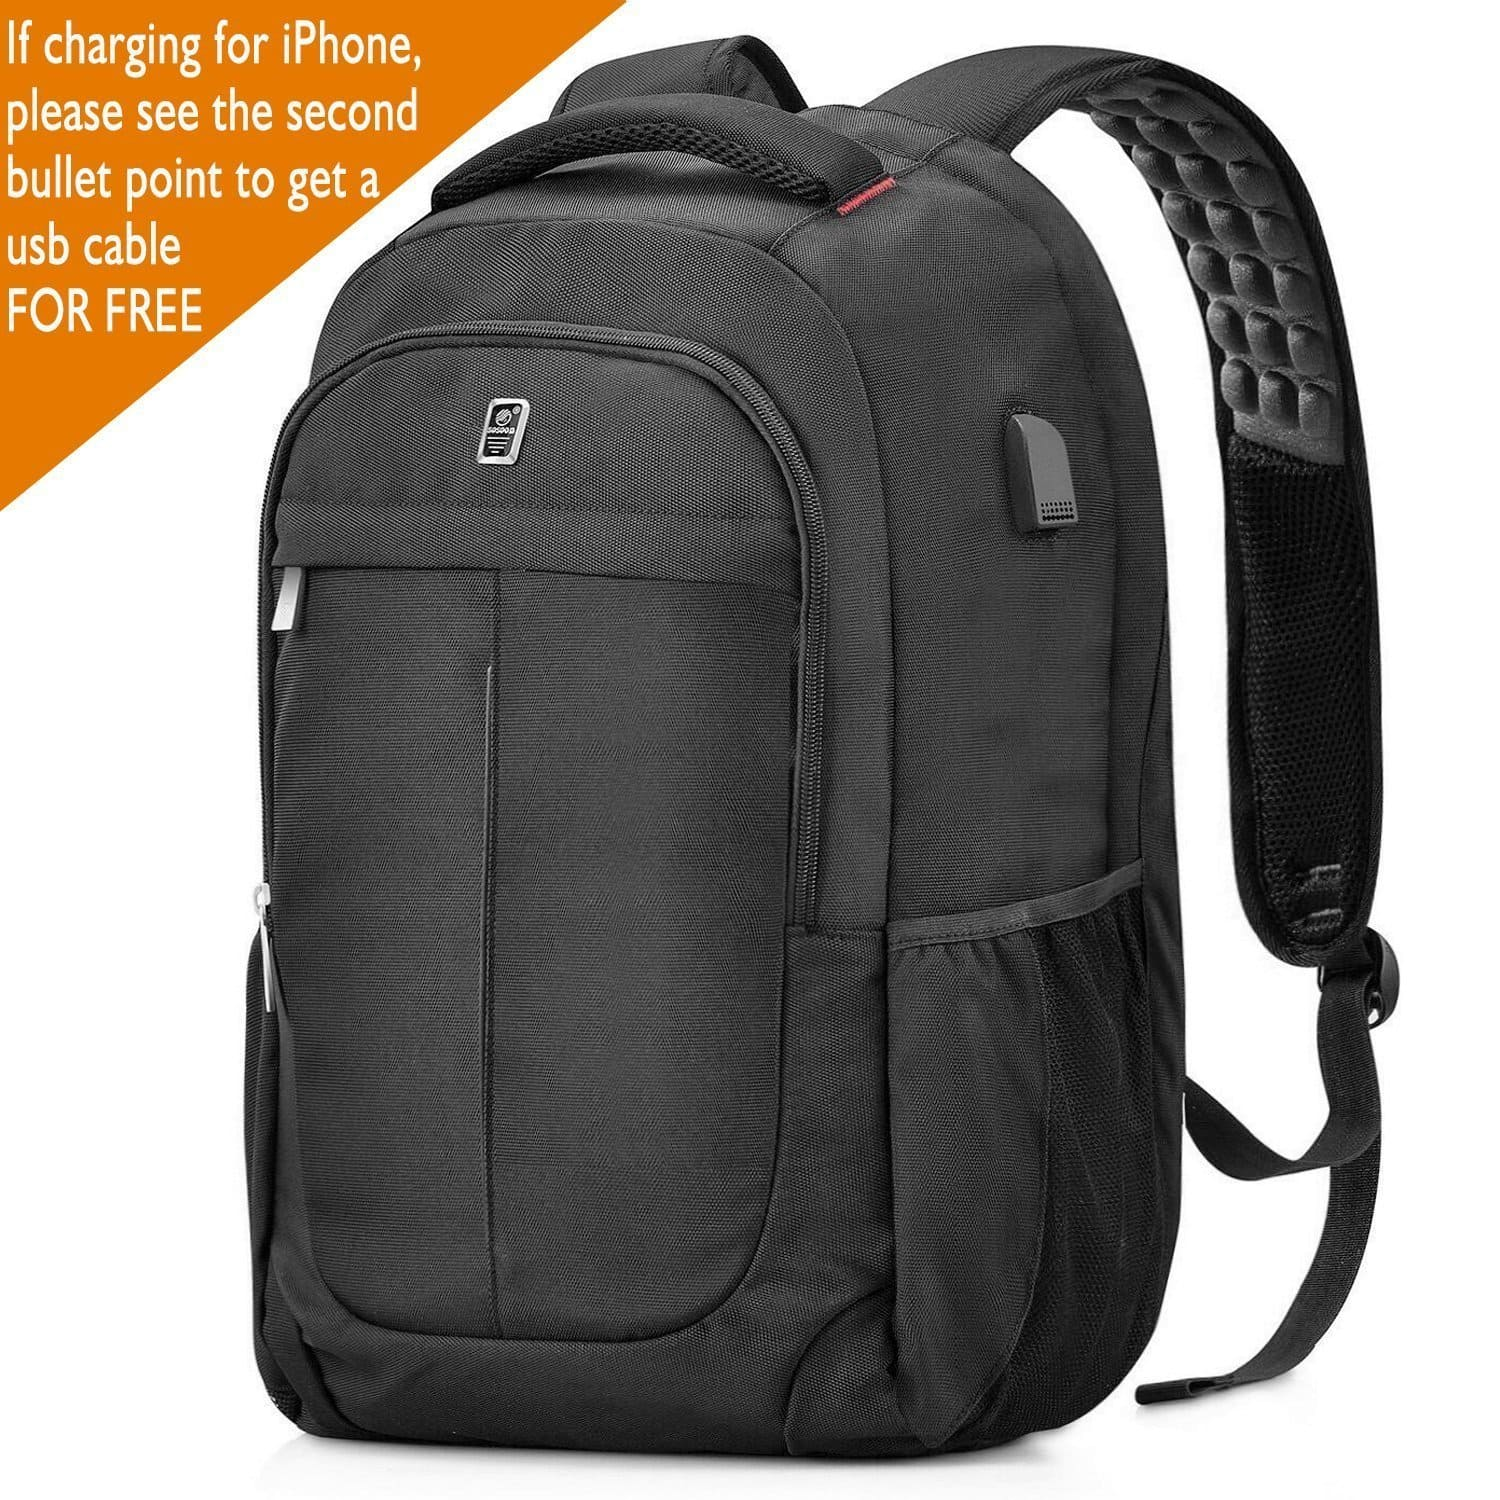 15.6-Inch Laptop Backpack with USB Charging Port $18.89